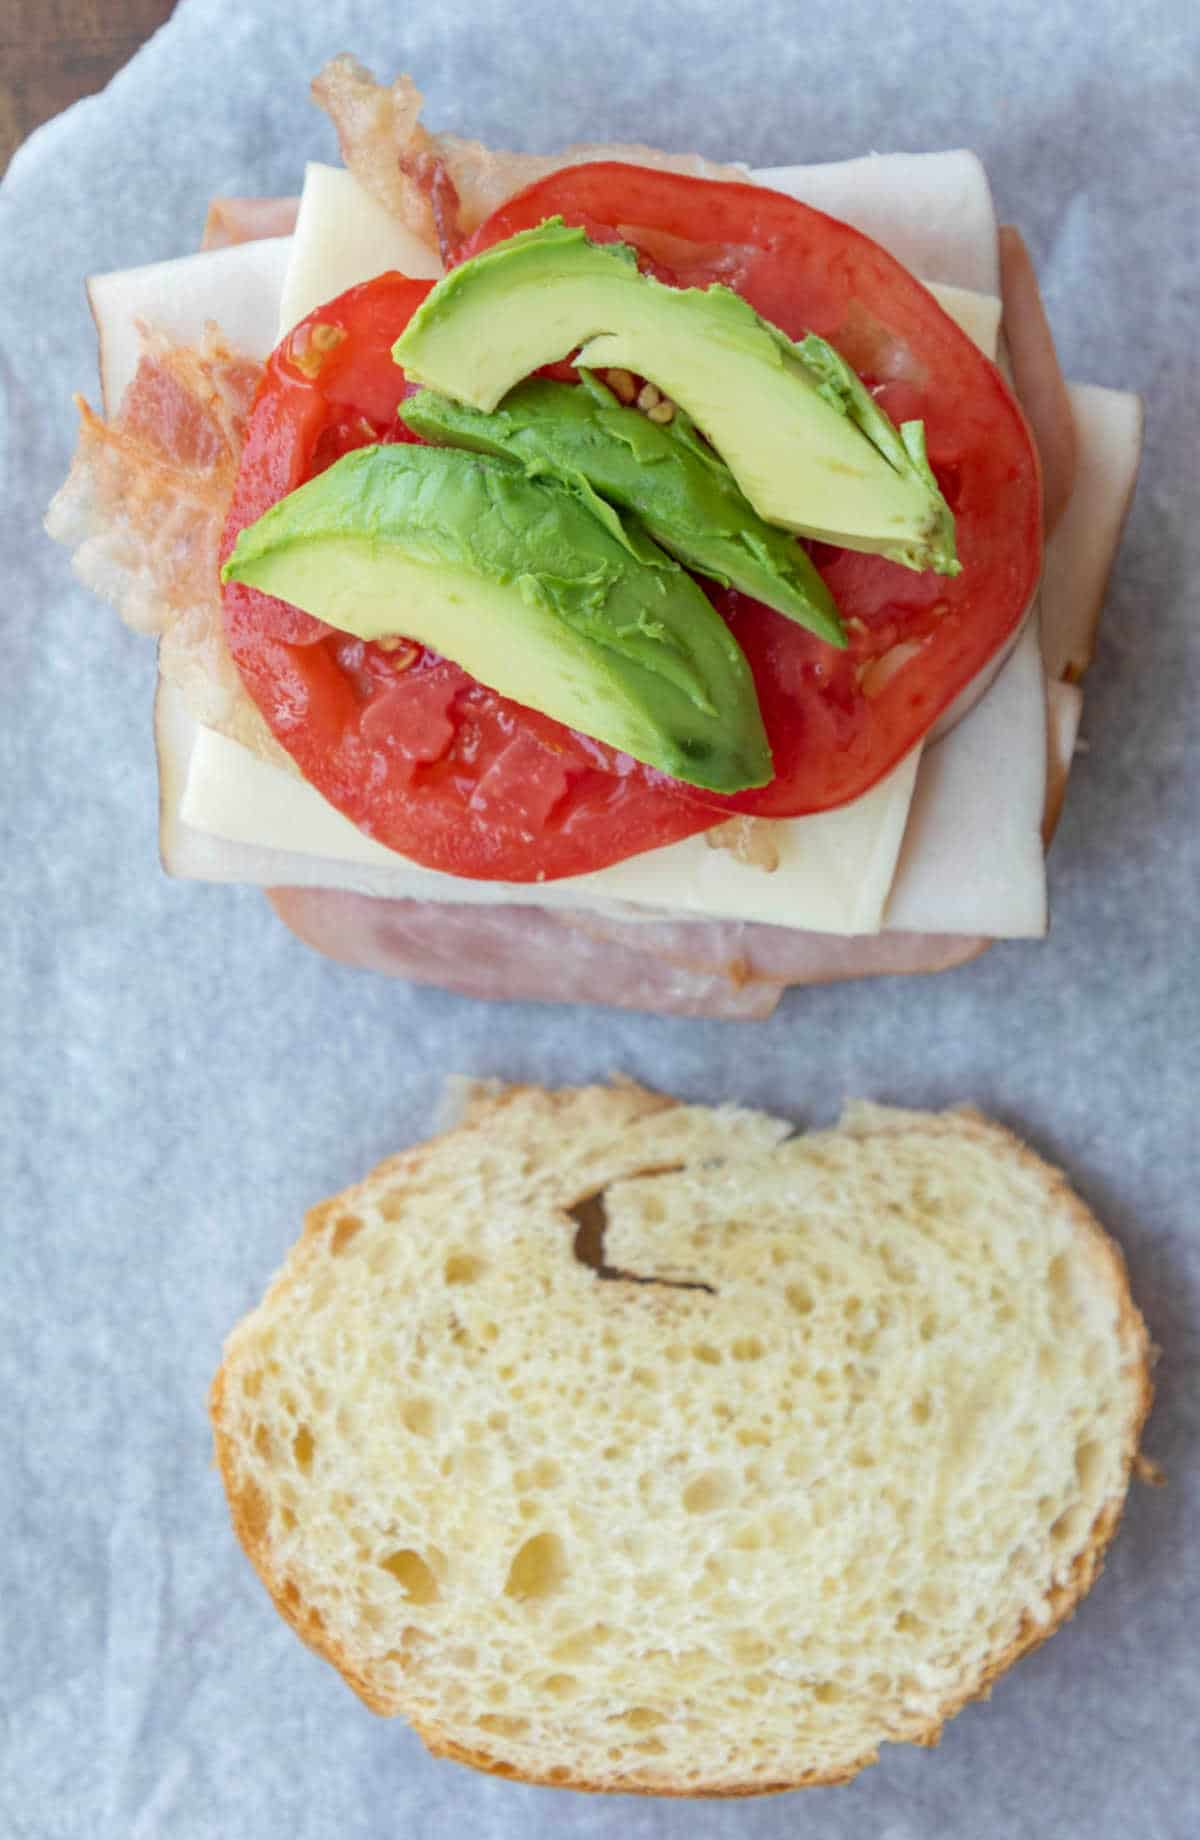 Slices of avocado and tomato on a croissant sandwich.